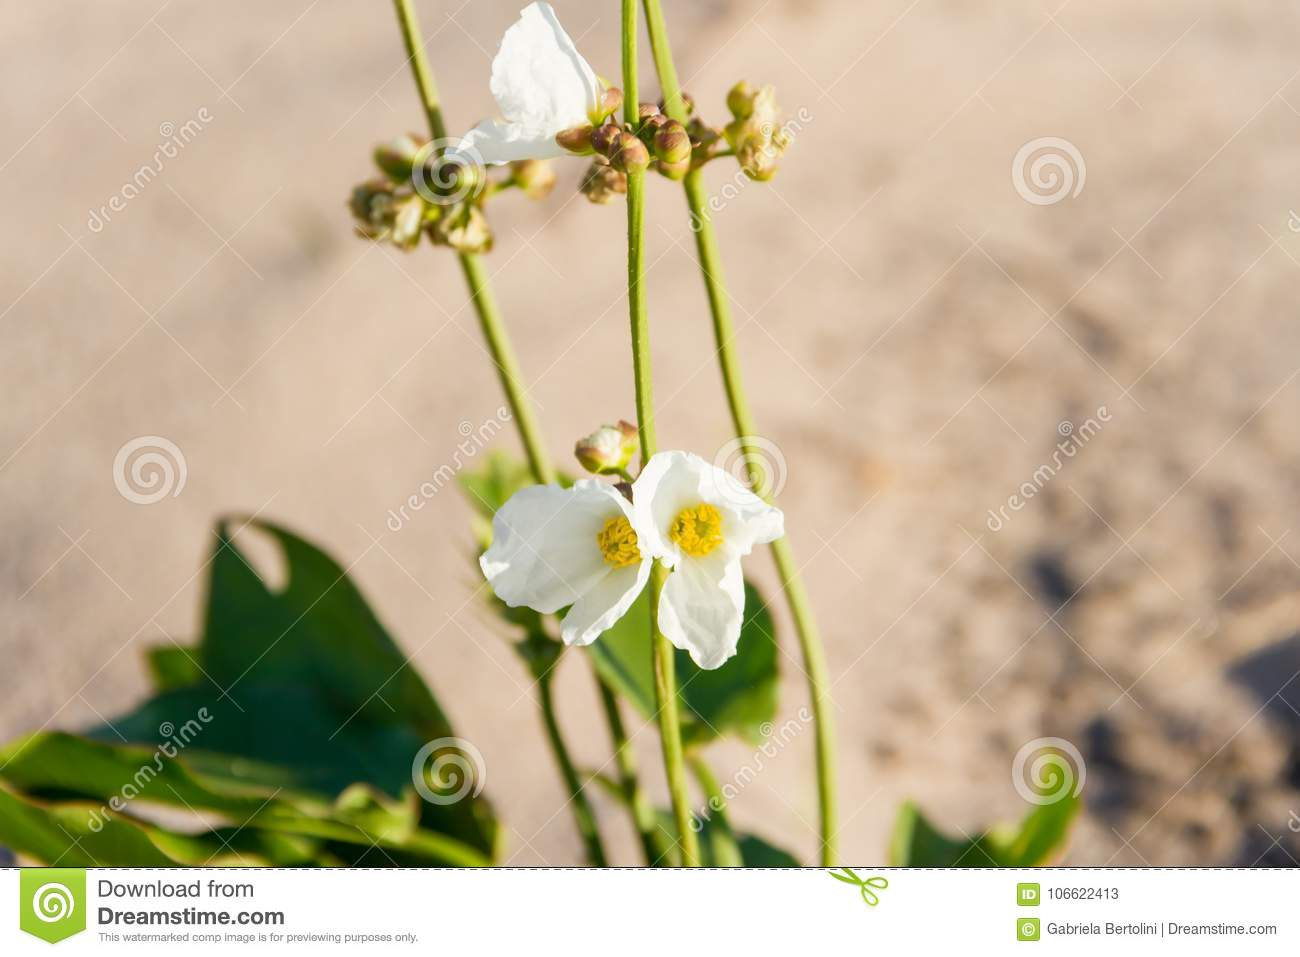 Plant With White And Yellow Flower On The Beach In The City Of